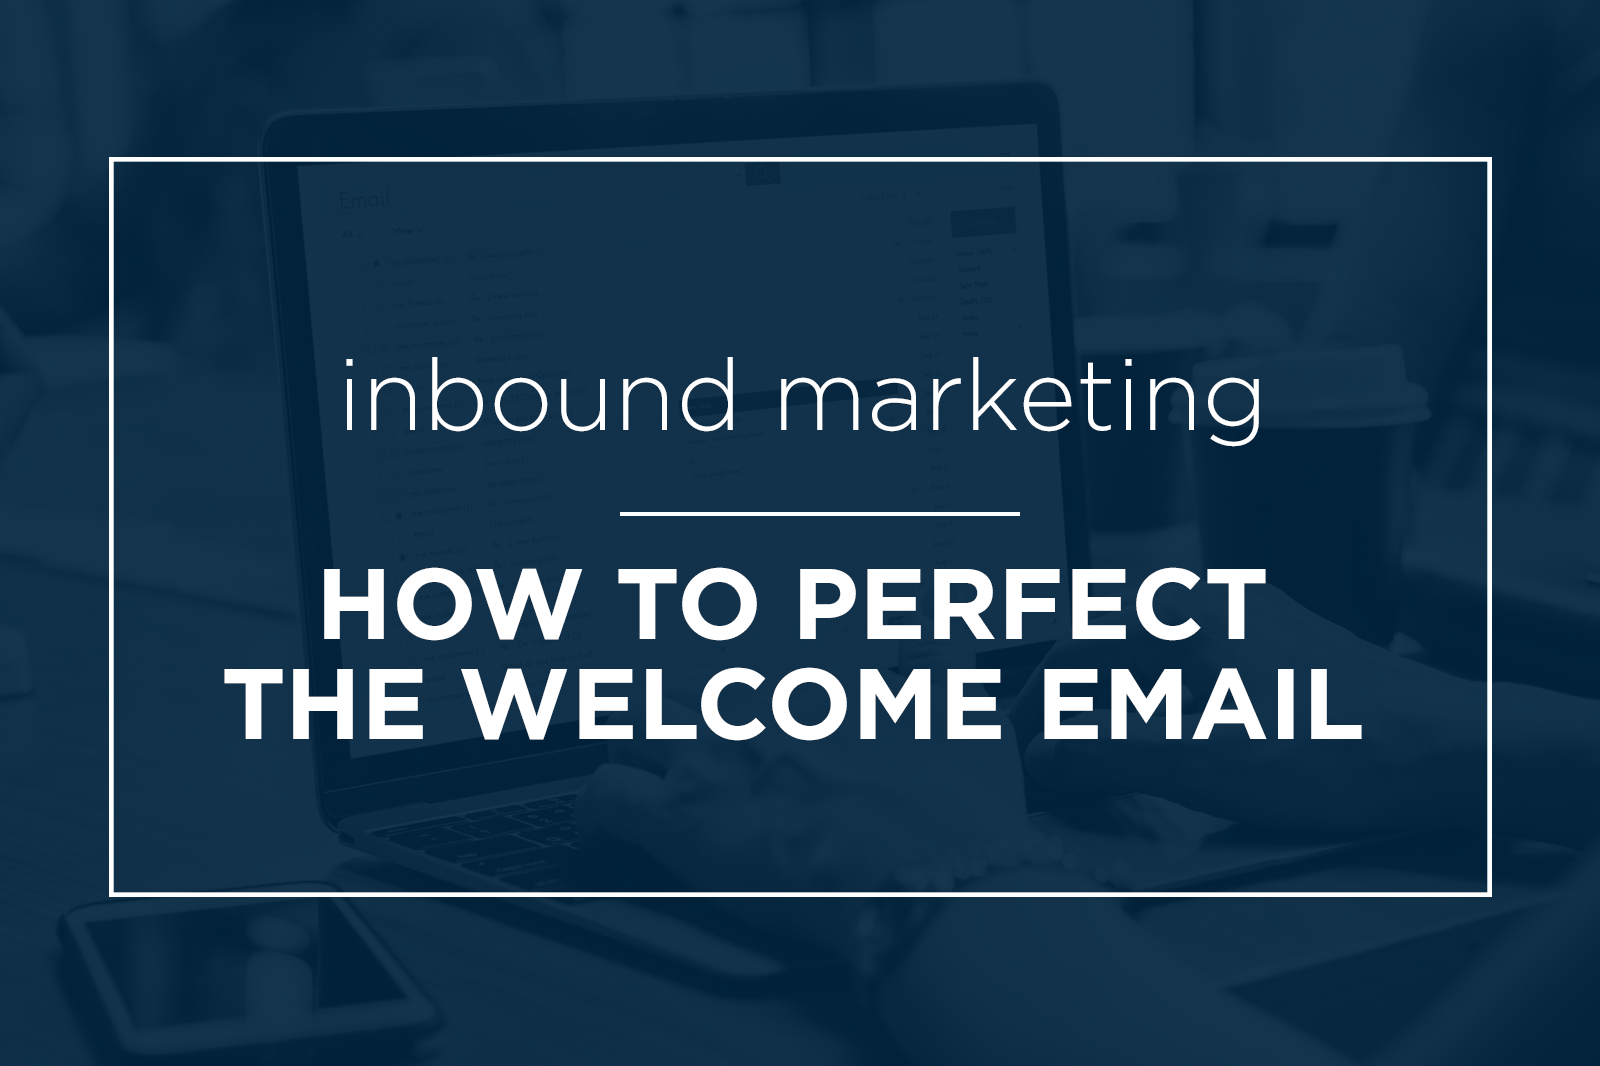 ecomm-welcome-email-feat